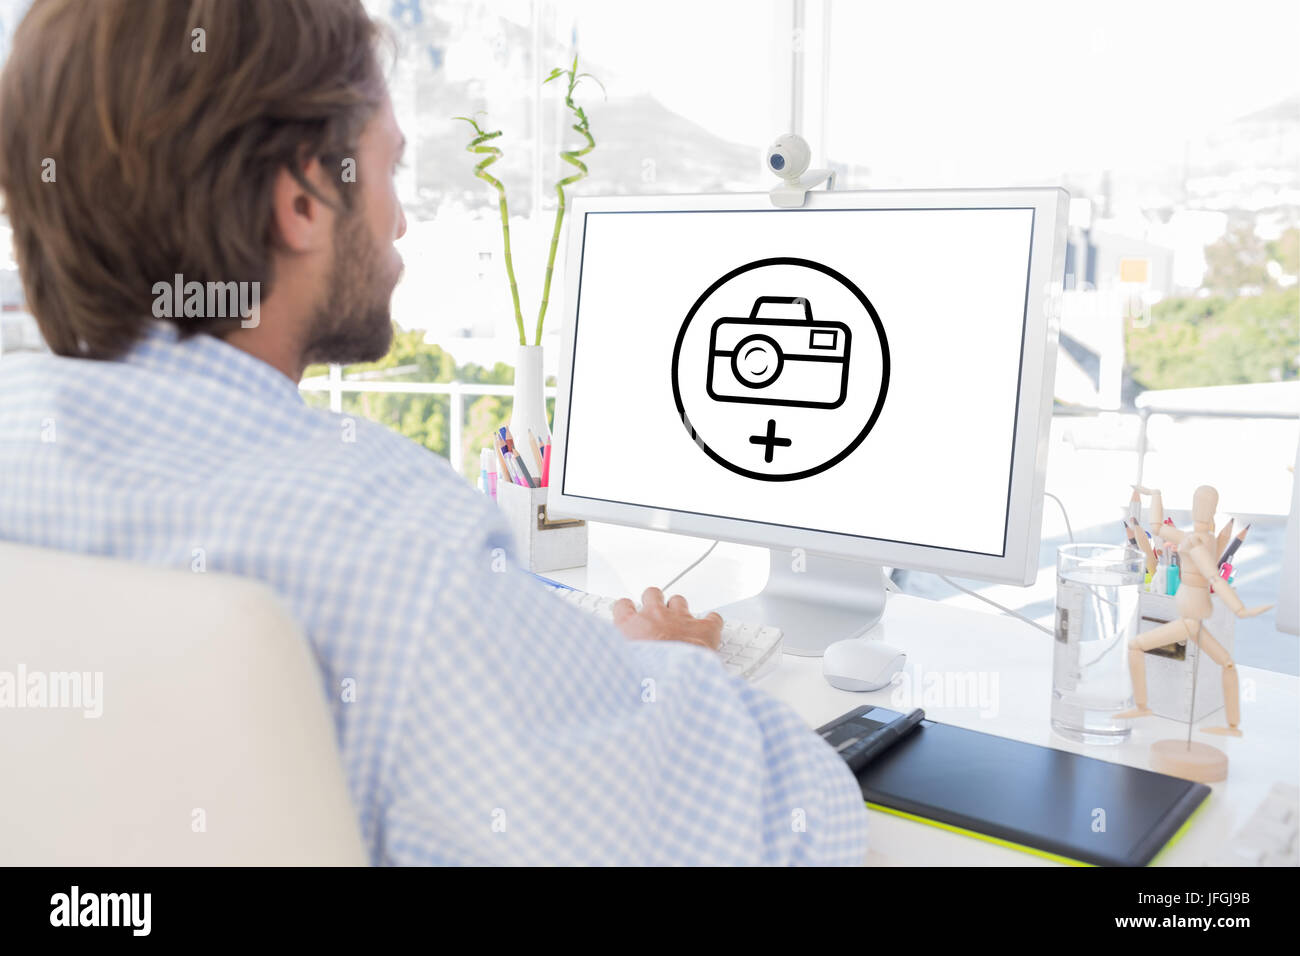 Composite image of desinger working on his computer - Stock Image